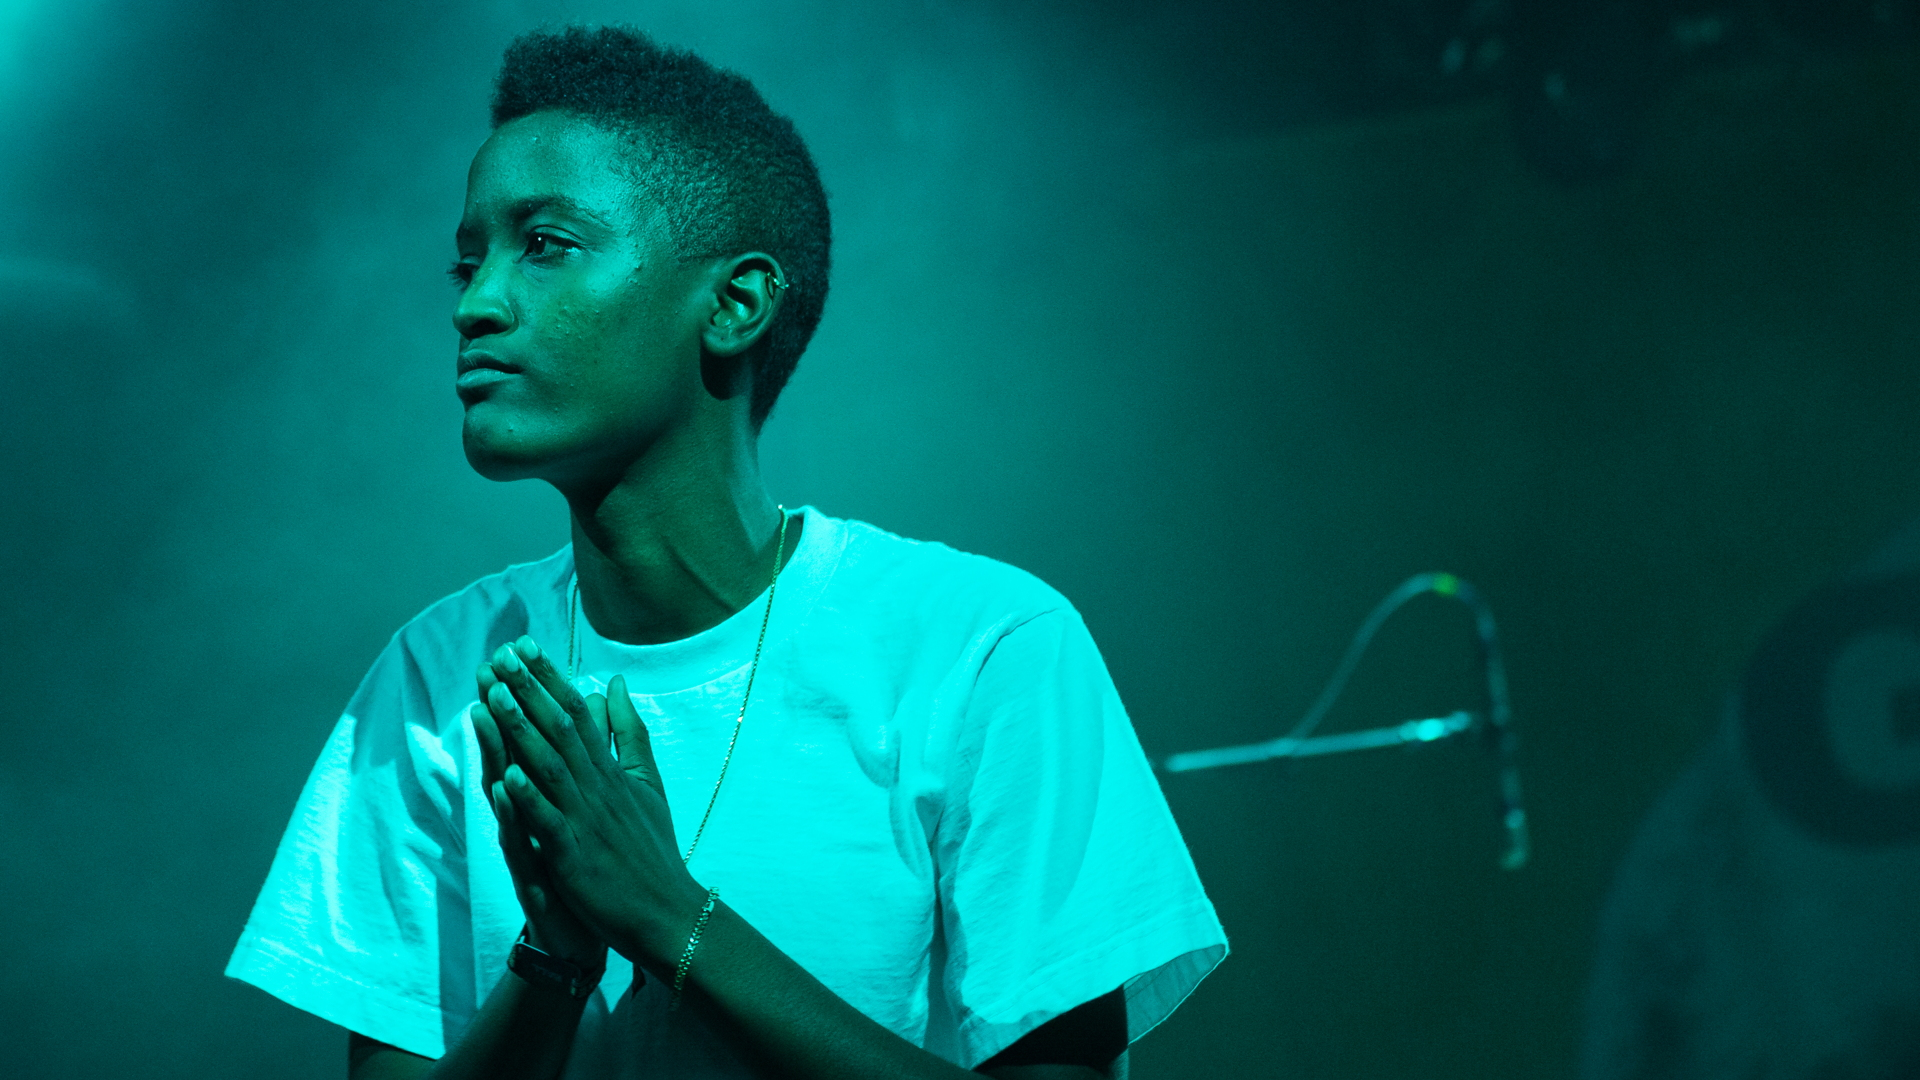 Syd tha Kyd with The Internet, Jun 8, 2014, by DeShaun Craddock (1920x1080)